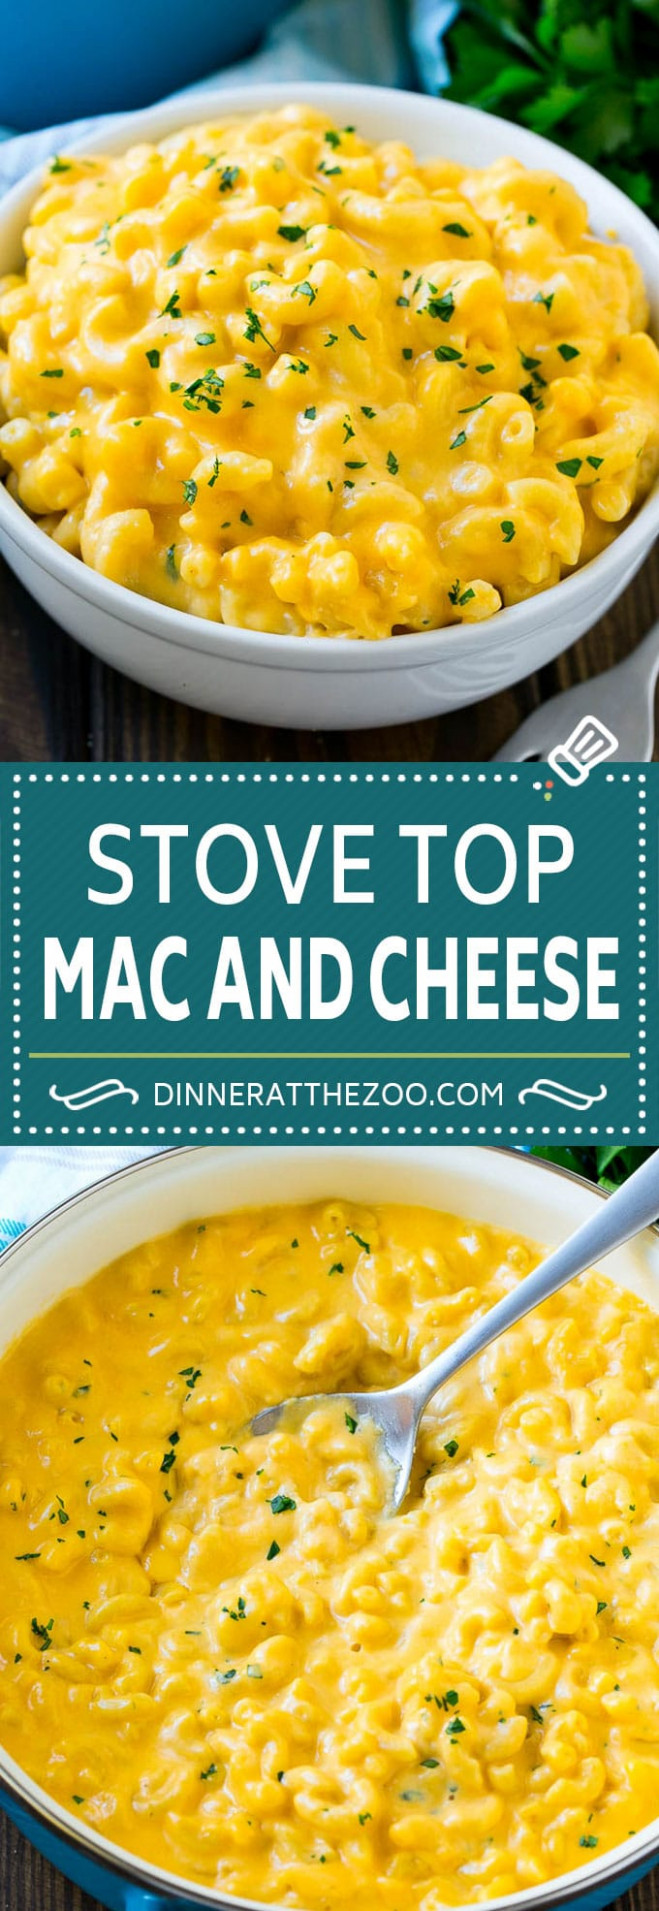 Stovetop Mac and Cheese - Dinner at the Zoo - dinner at the zoo recipes